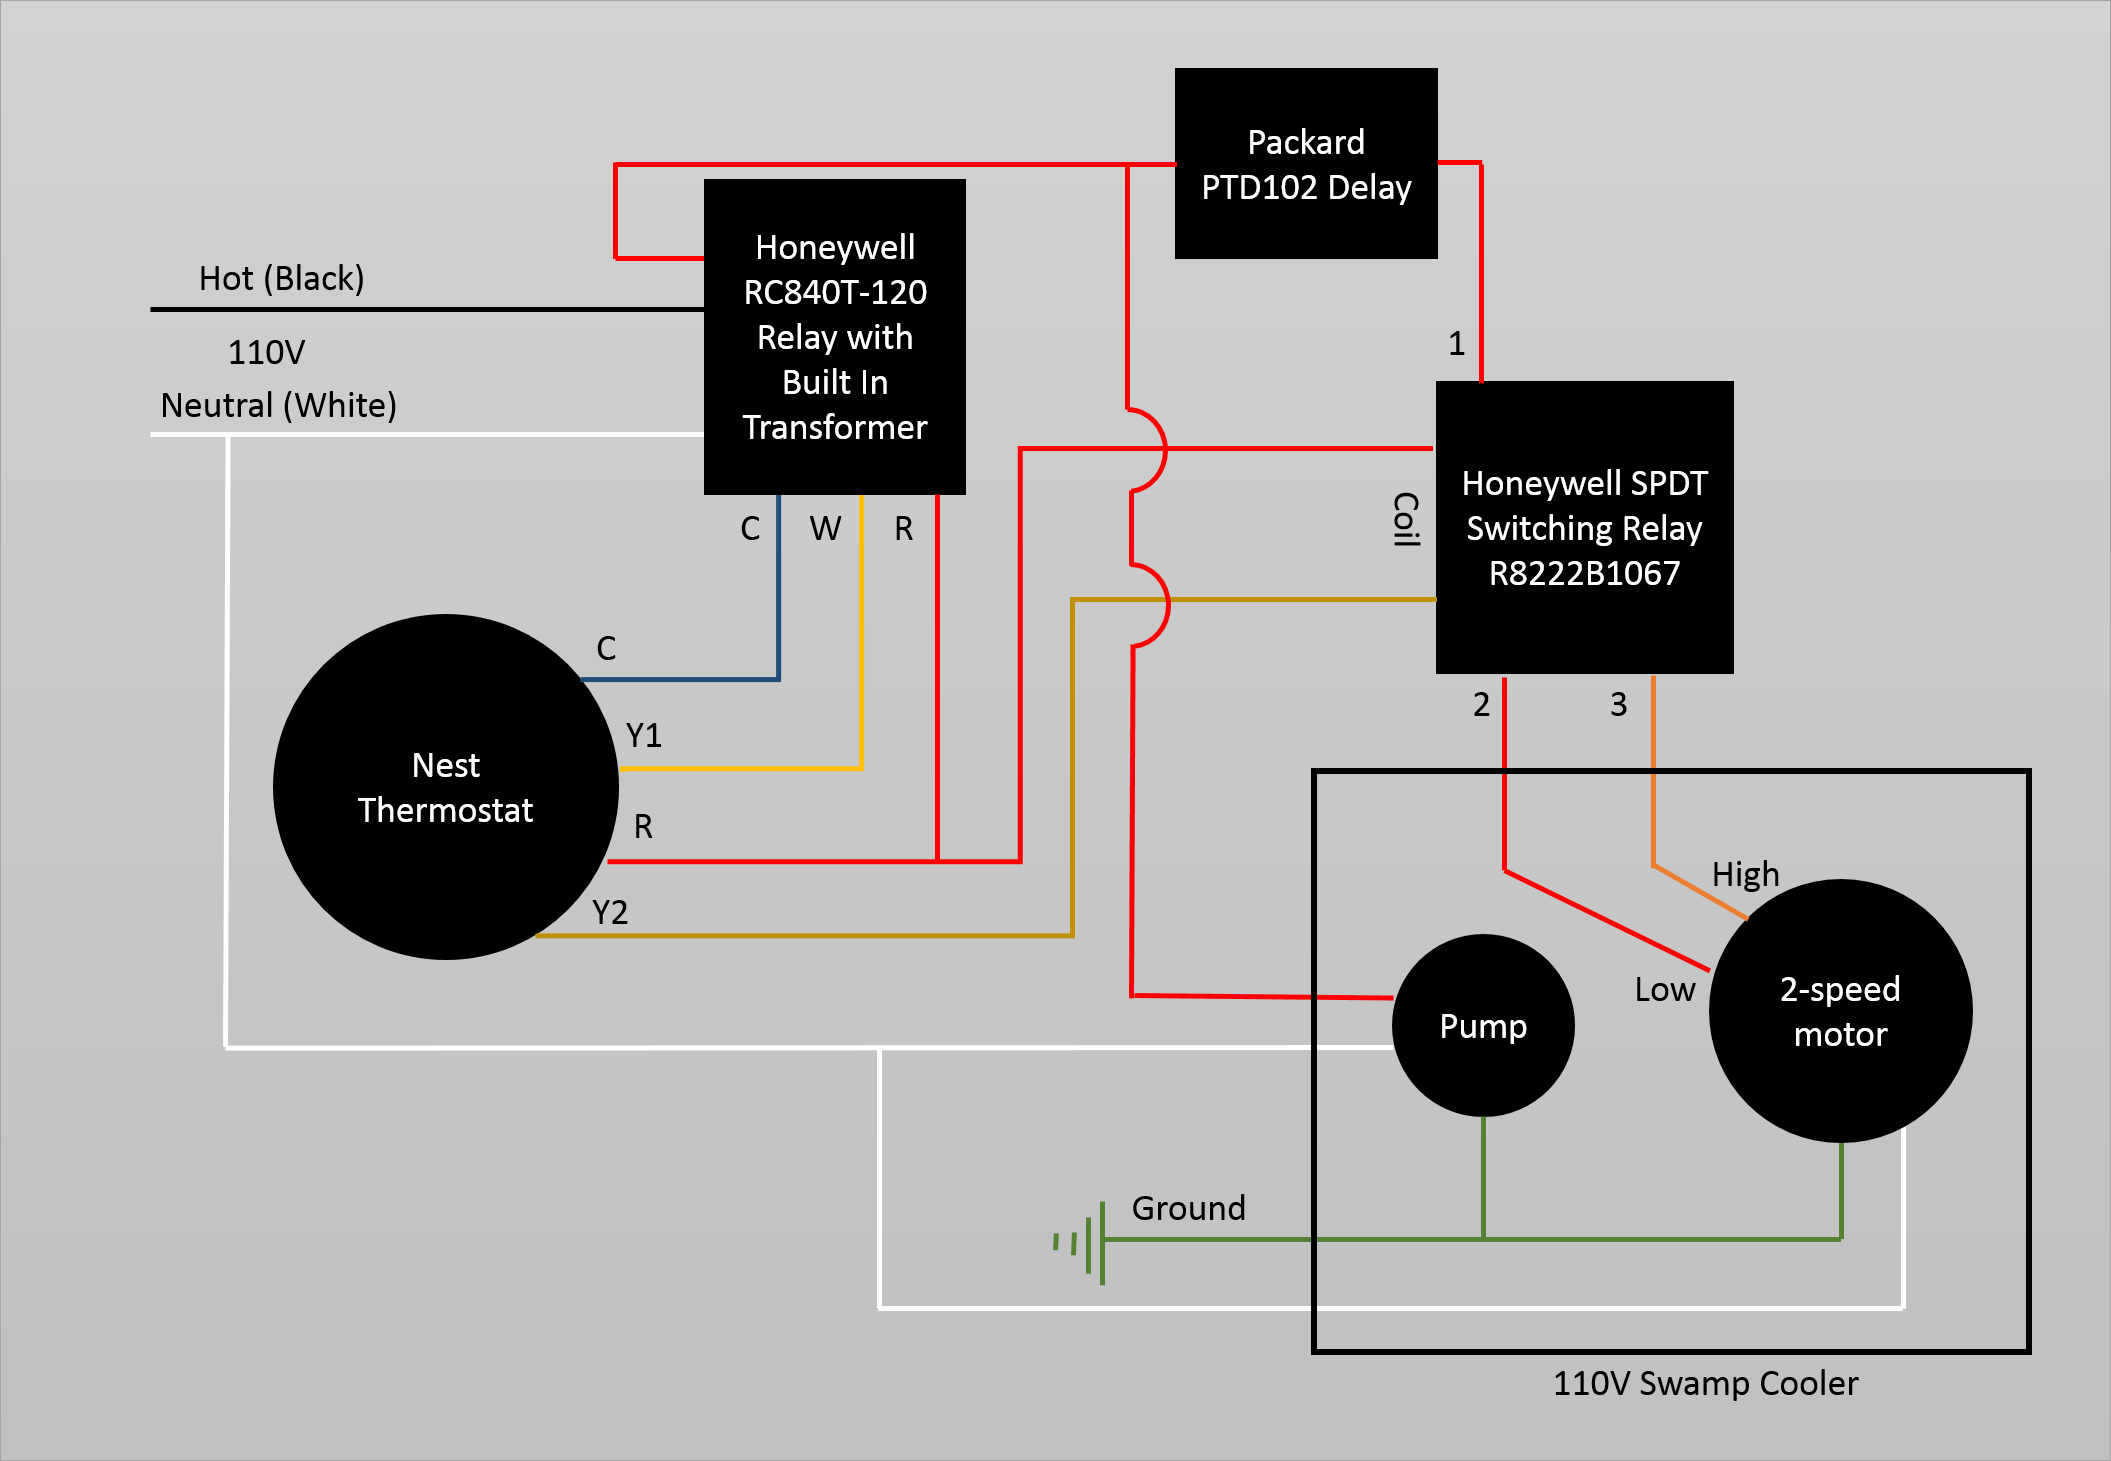 Wiring - Controlling 110V Swamp Cooler Using Nest Thermostat - Home - Nest Thermostat Wiring Diagram For Hot Air Heat